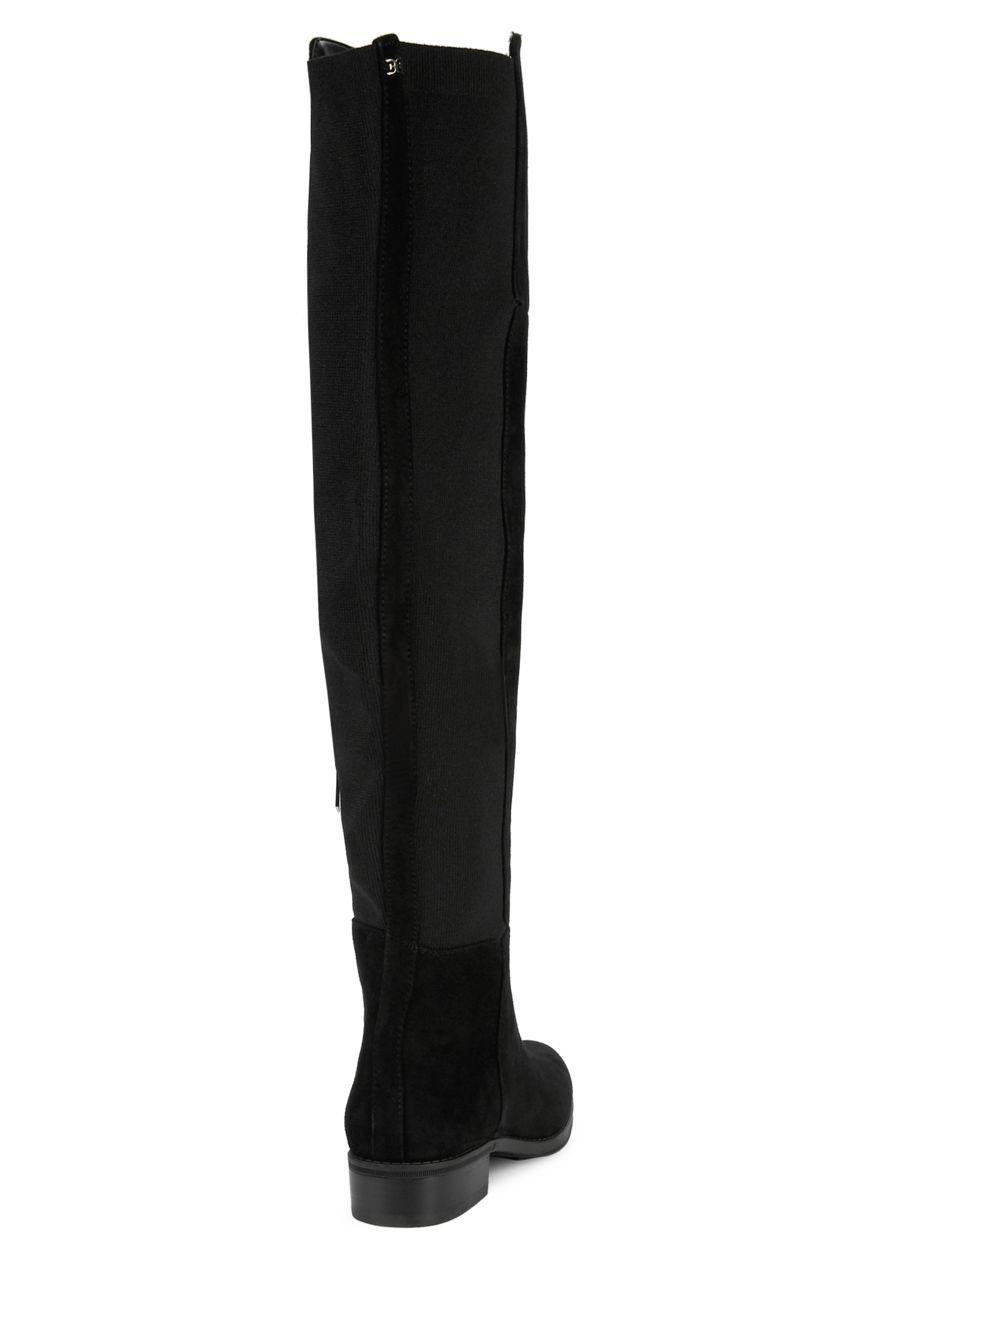 fd5336b3b79 Lyst - Sam Edelman Pam Over-the-knee Boots in Black - Save 14%